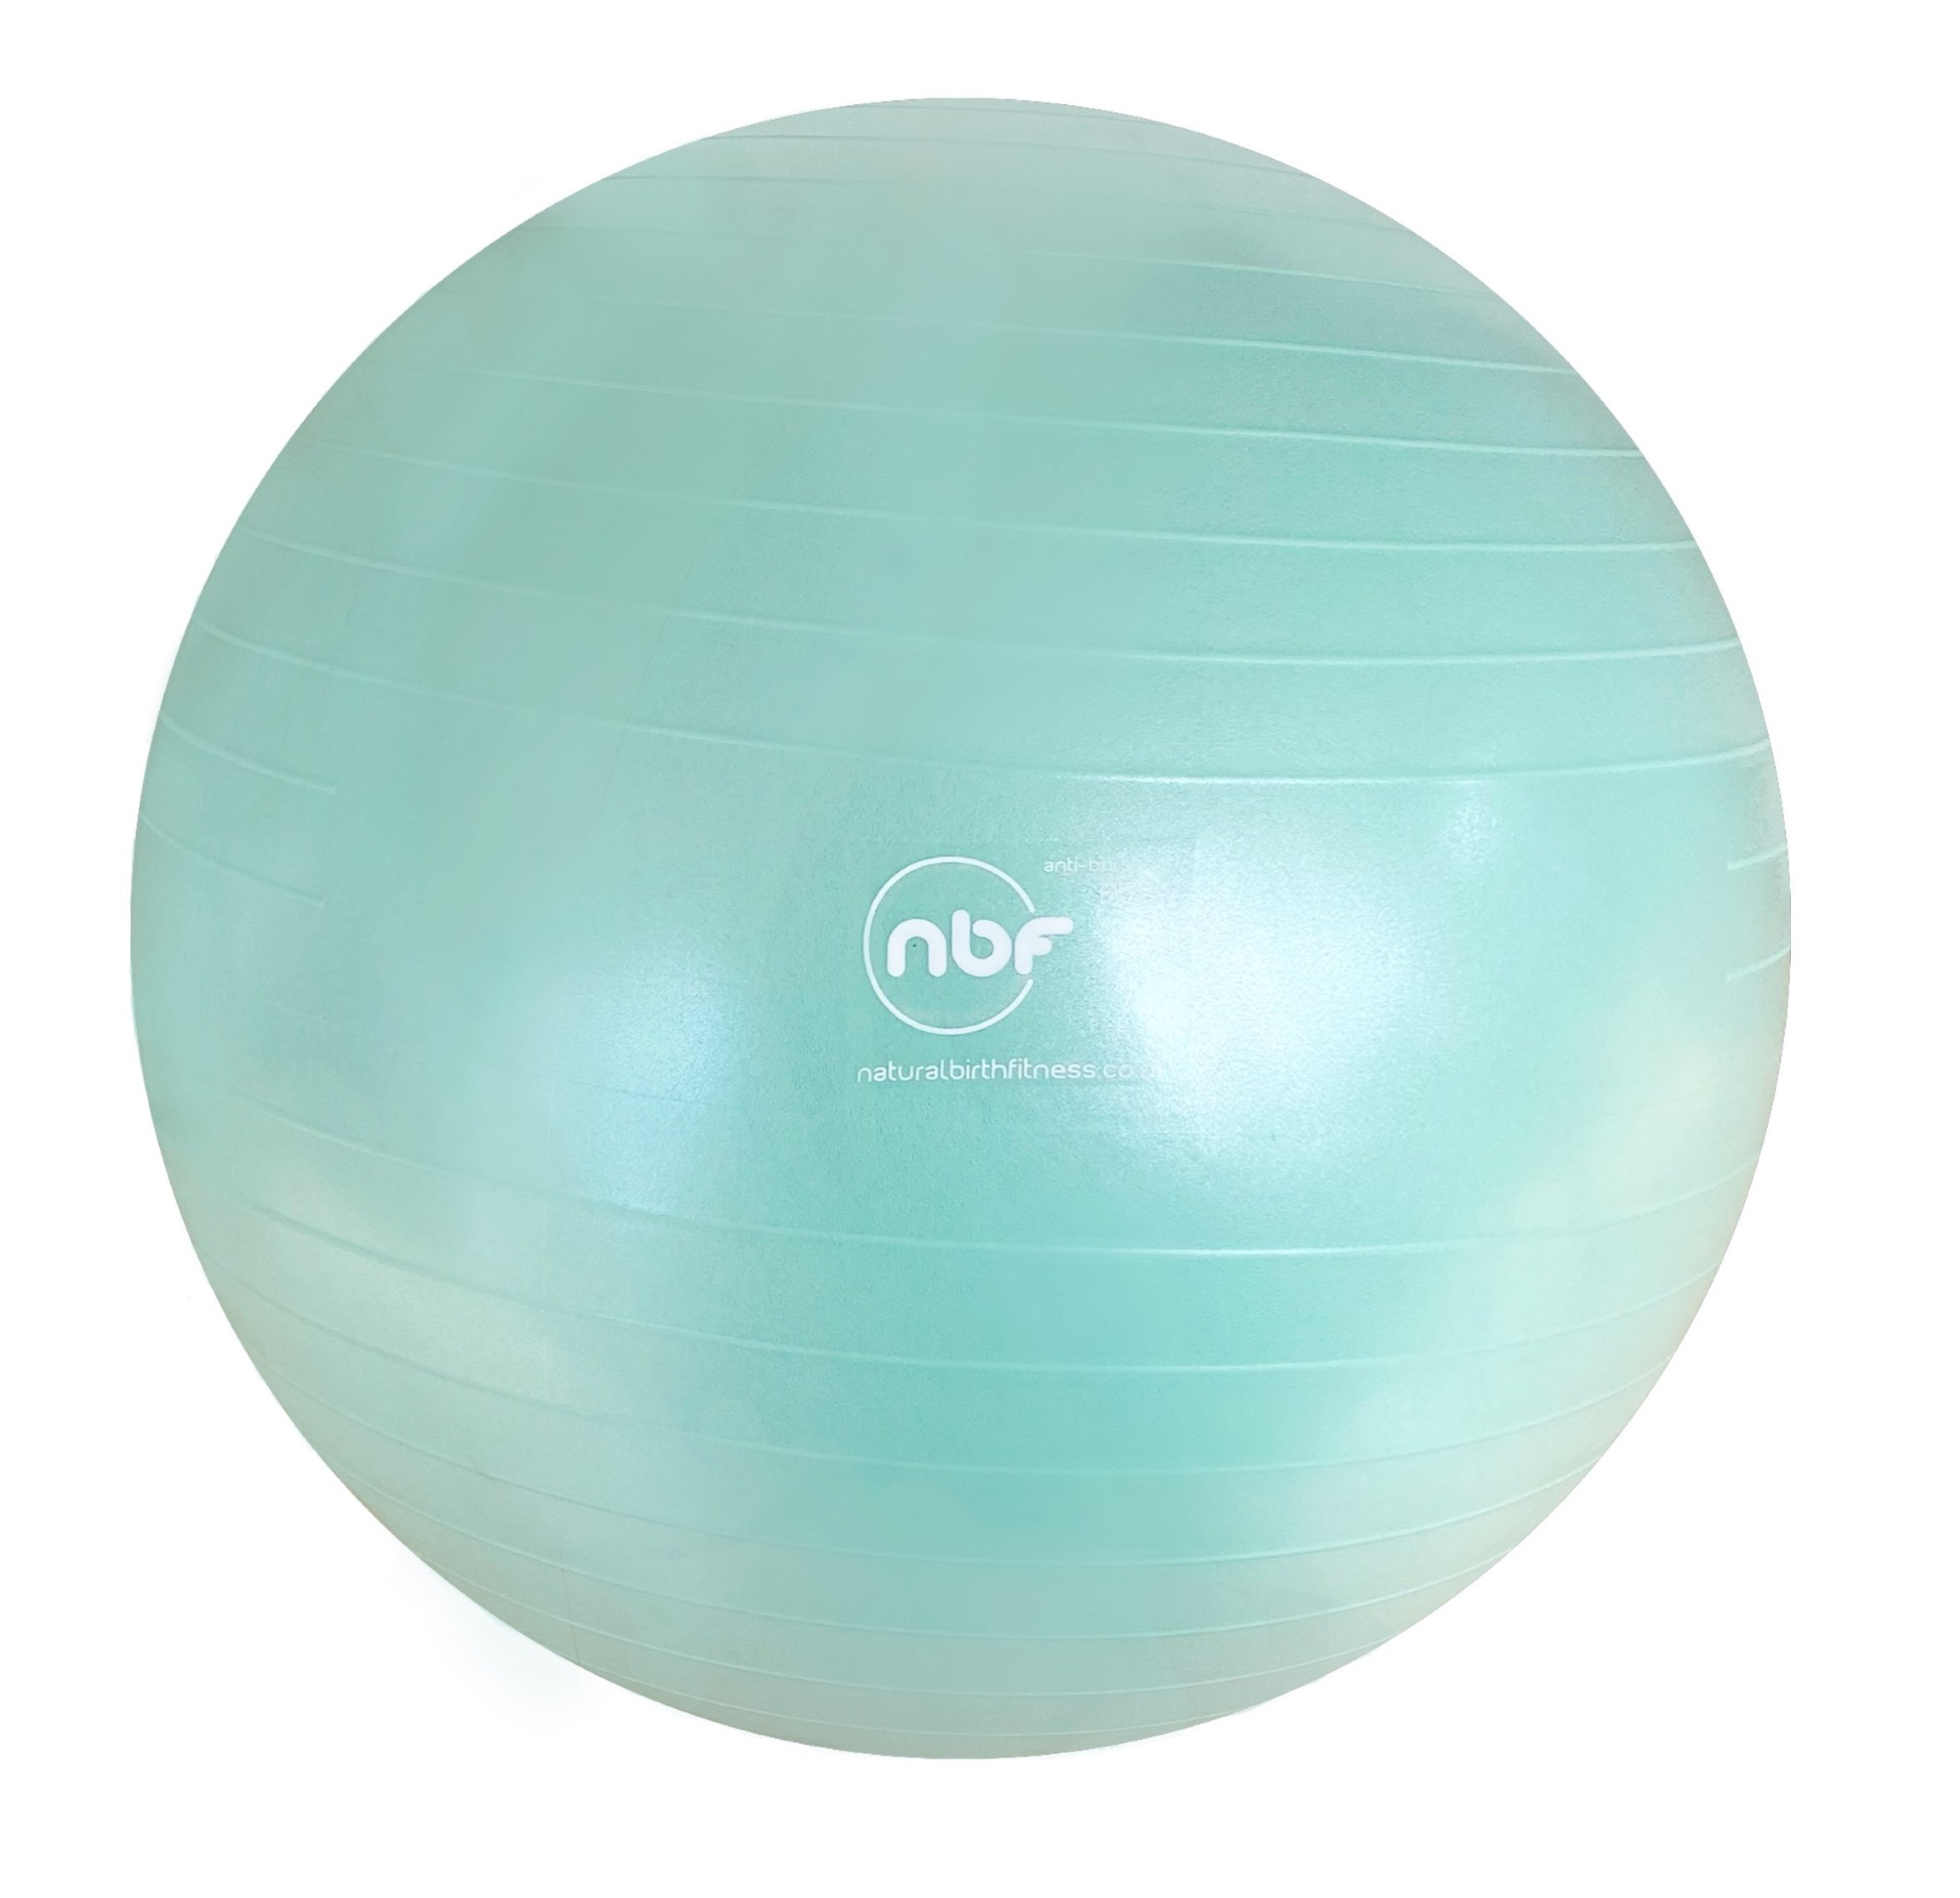 NBF Birth Ball & Pump 65cm Mint